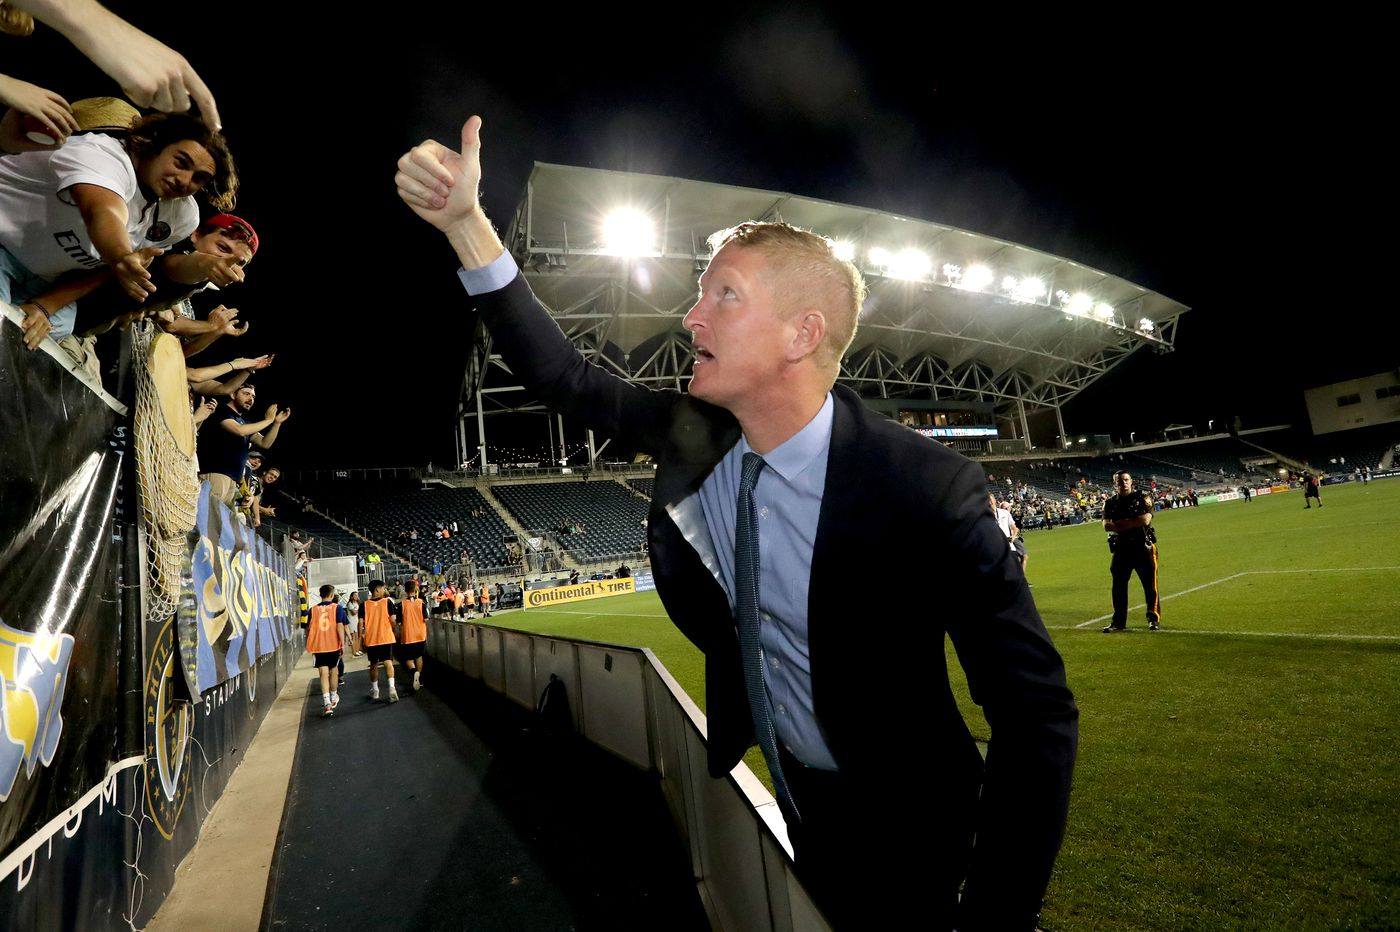 Union's Jim Curtin enjoying wins, family life during Philadelphia's renaissance